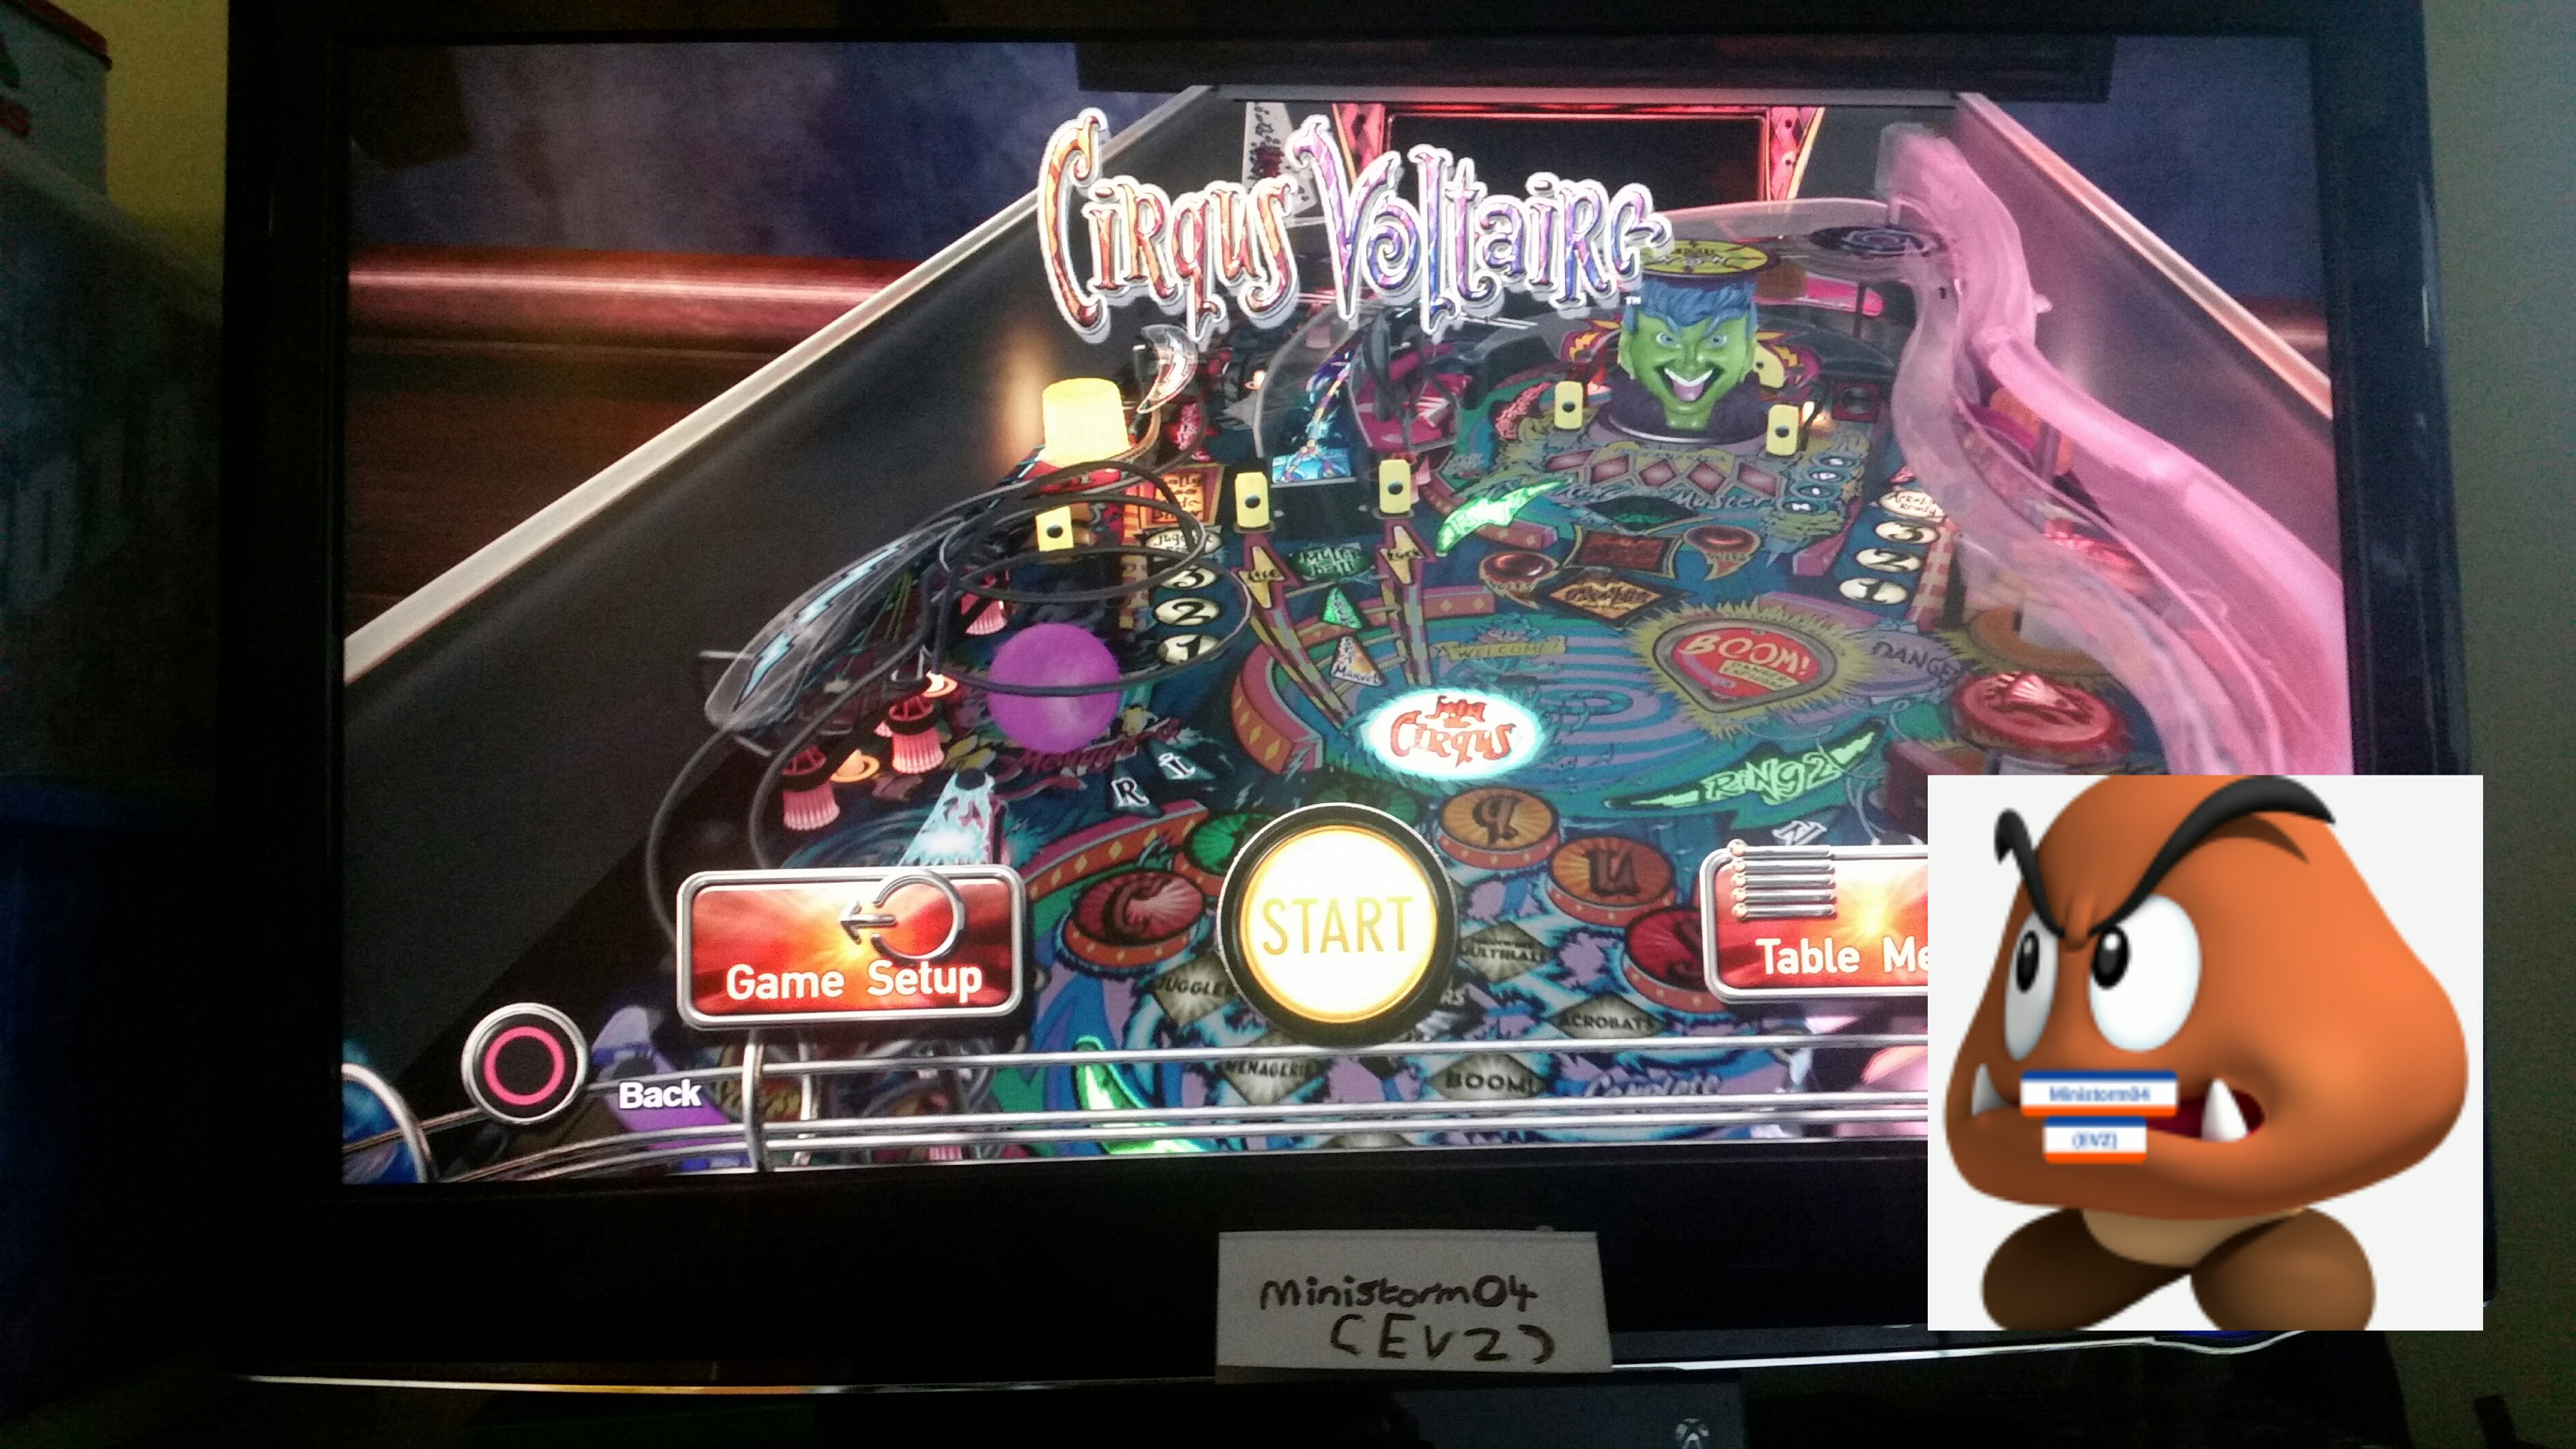 ministorm04: Pinball Arcade: Circus Voltaire (Playstation 4) 3,236,240 points on 2019-06-01 02:46:32